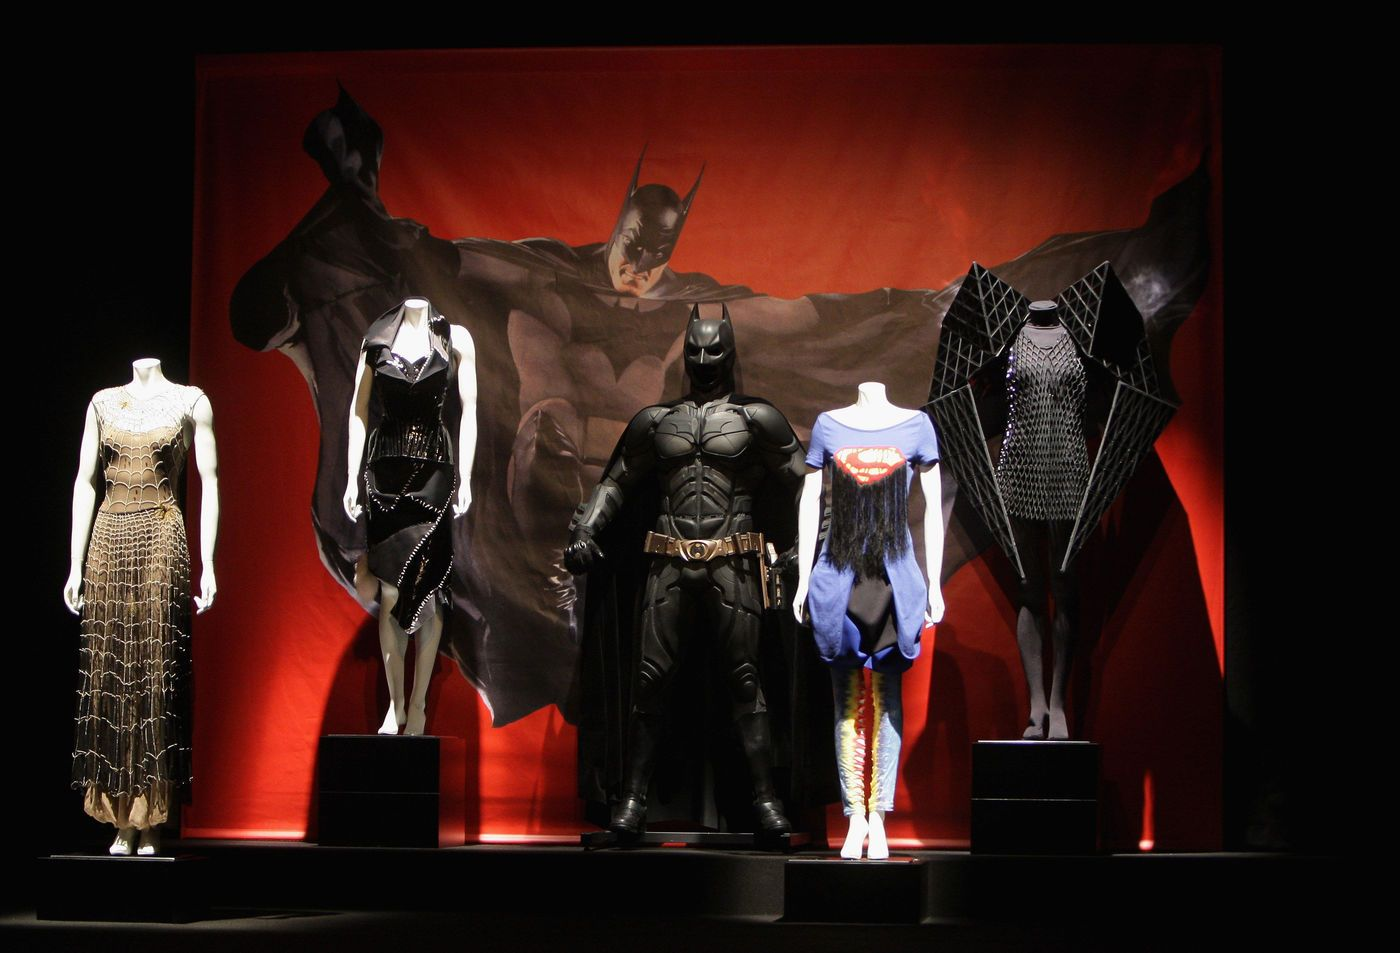 MILAN, ITALY - FEBRUARY 20:  A view of the costumes on stage during the launch of the Giorgio Armani Sponsored Exhibition Super Heroes: Fashion and Fantasy as part of Milan Fashion Week Autumn/Winter 2008/09 at the Metropolitan Museum of Art on February 20, 2008 in Milan, Italy.  (Photo by Venturelli/WireImage)